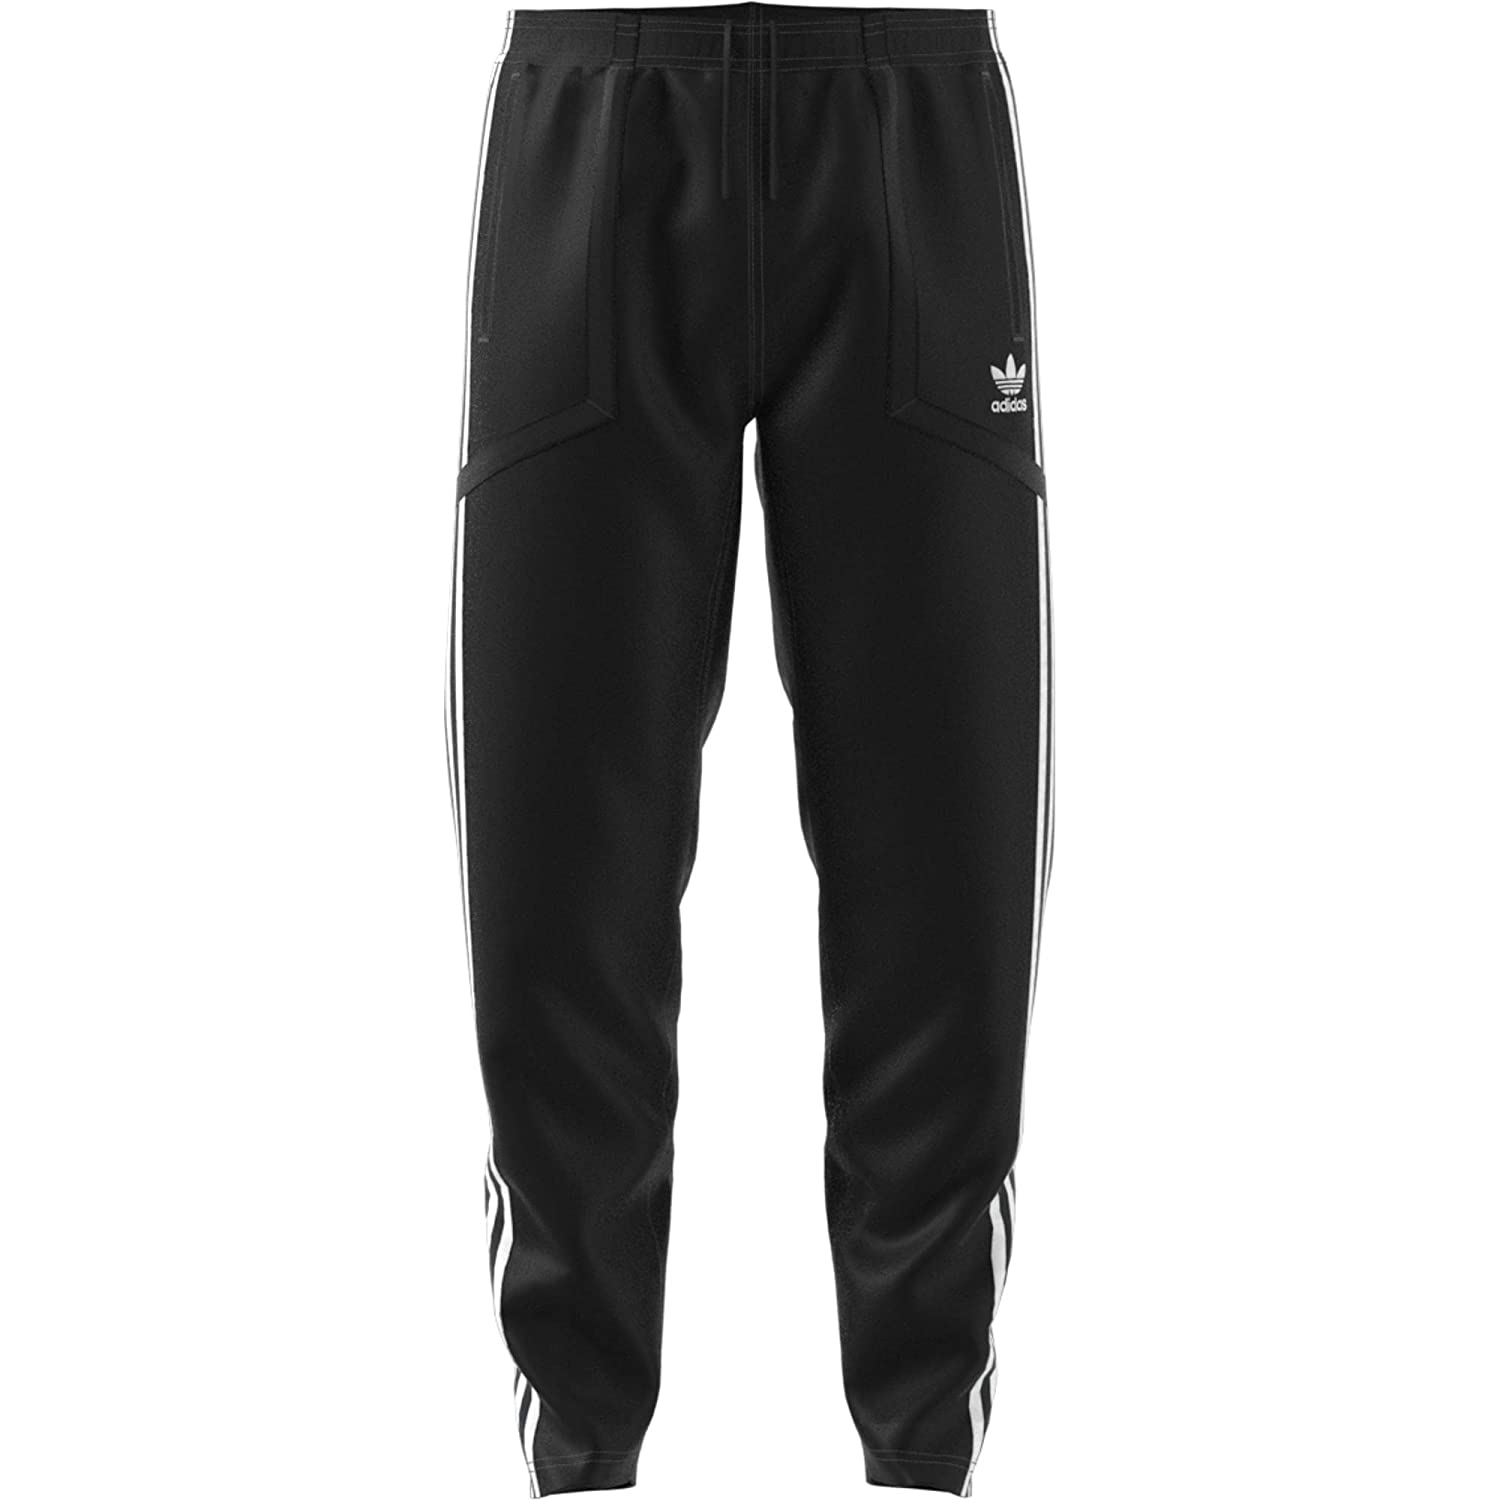 adidas Originals Herren Jogginghose Windsor Tp schwarz L